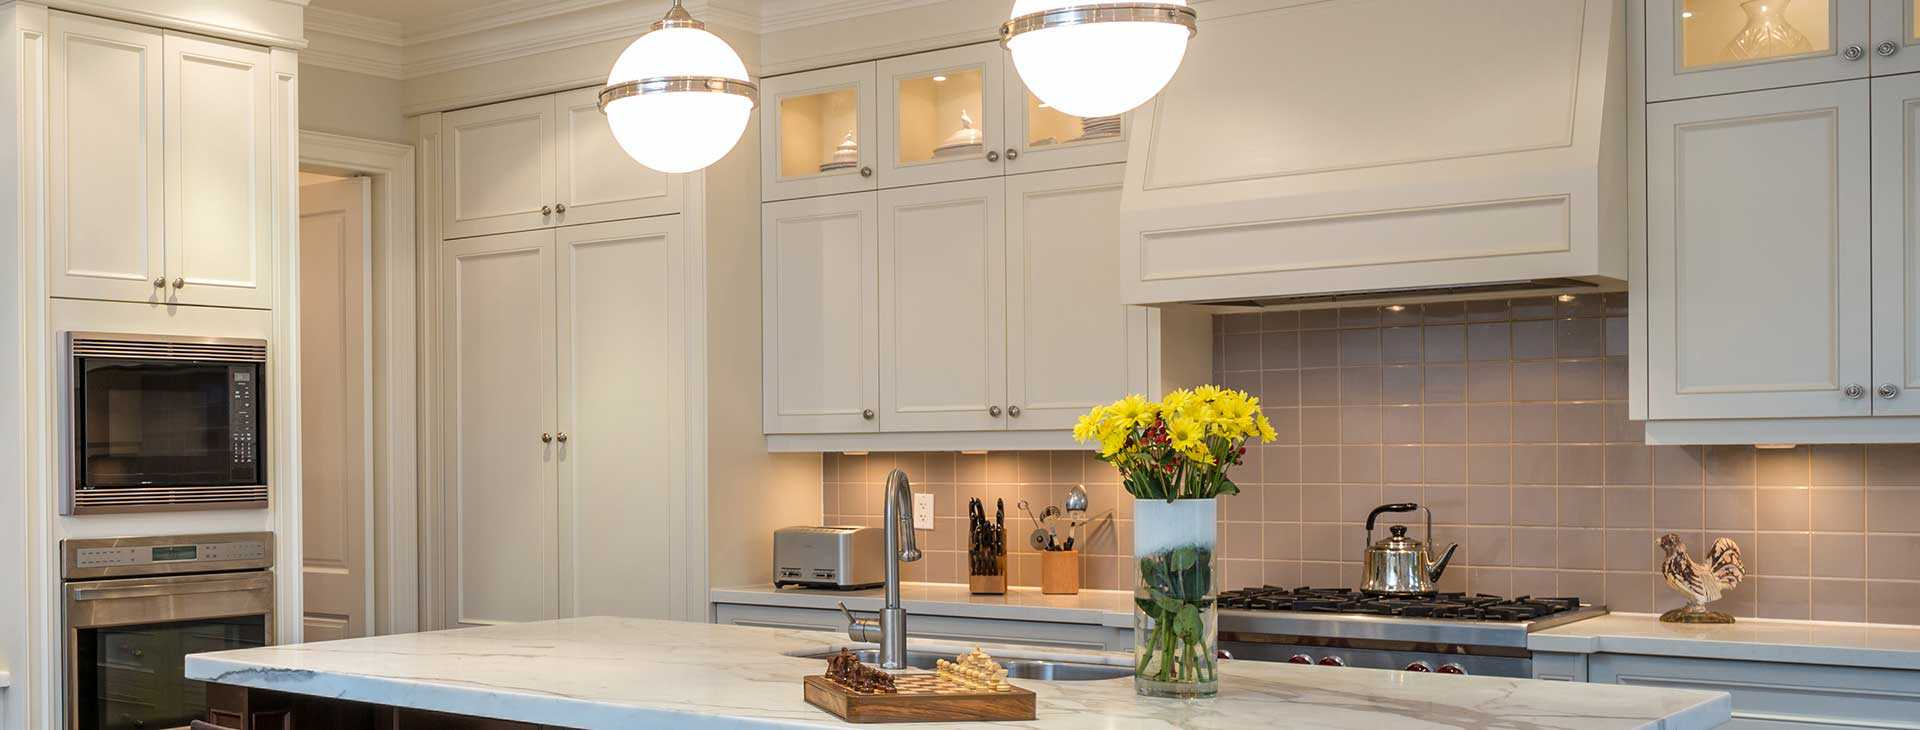 Beautiful white kitchen with traditional forever cabinet door and drawer fronts